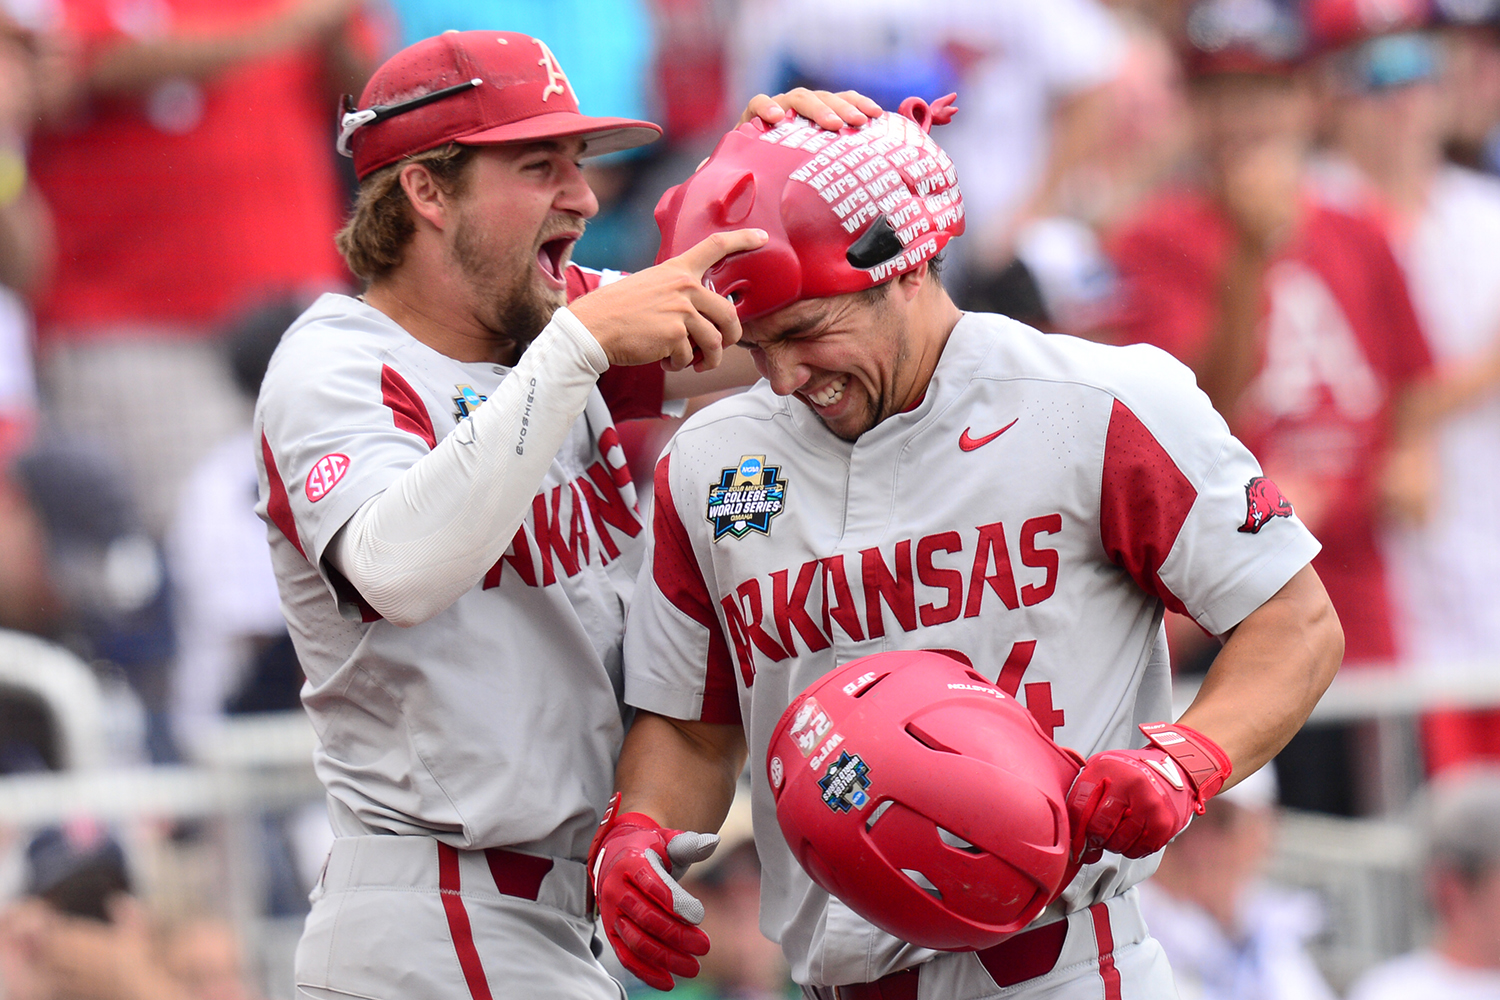 Fletcher Leads Razorbacks Into CWS Semifinals